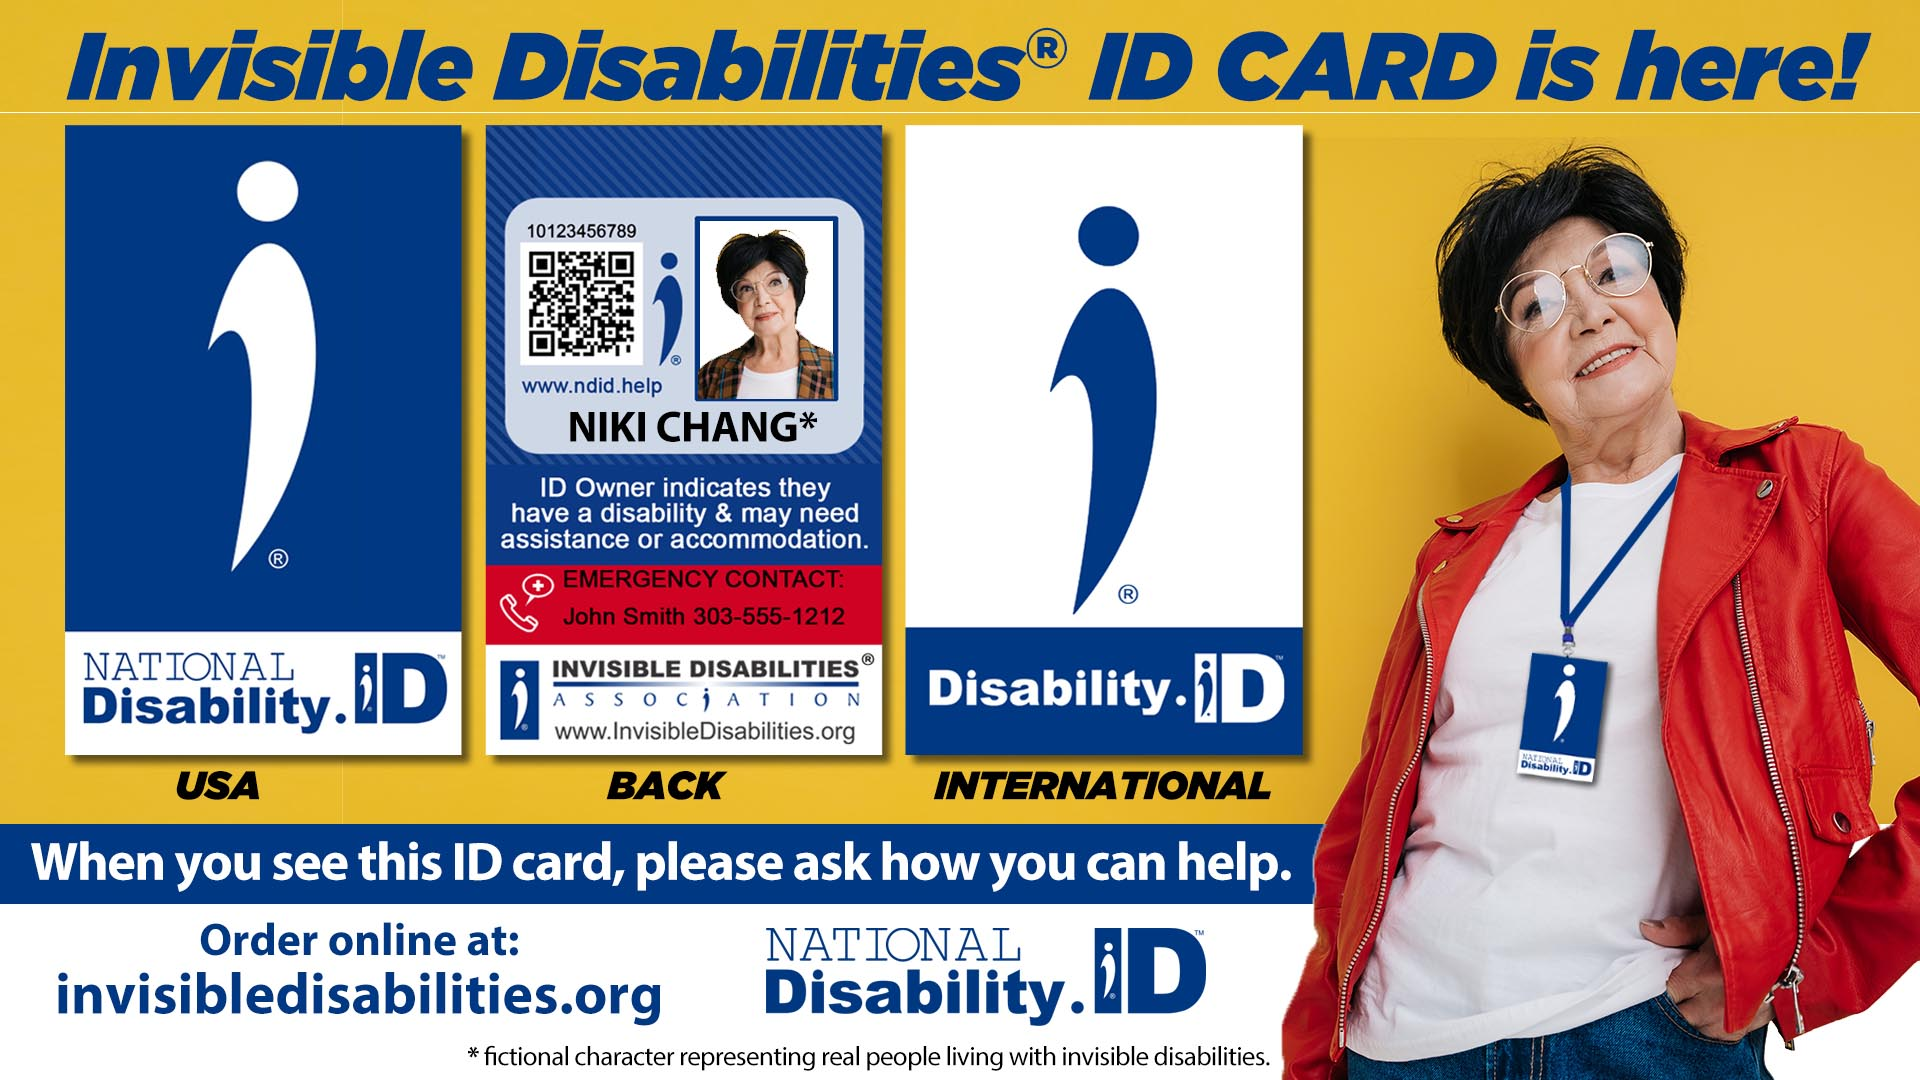 National Disability ID Card - Invisible Disabilities ID Card Introduction - Invisible Disabilities Association